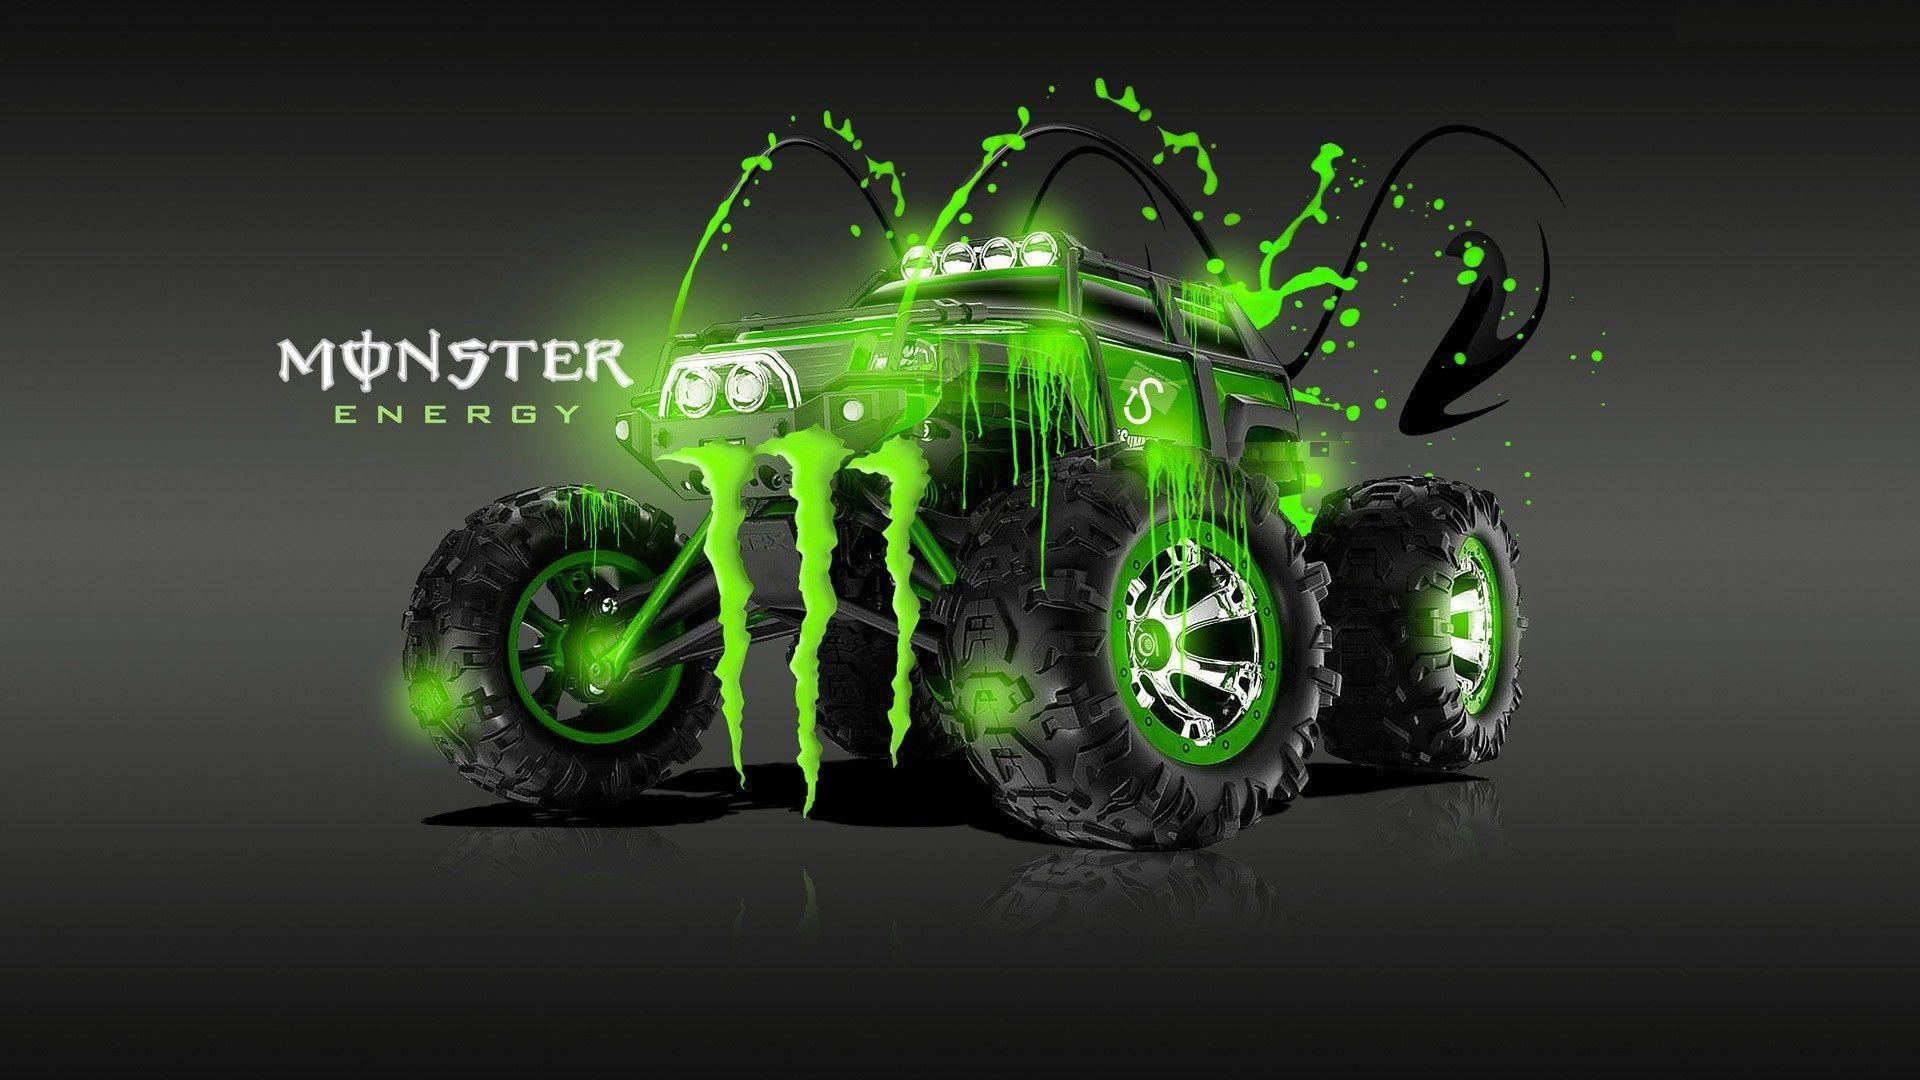 monster energy wallpapers for phones 3d - wallpaper cave